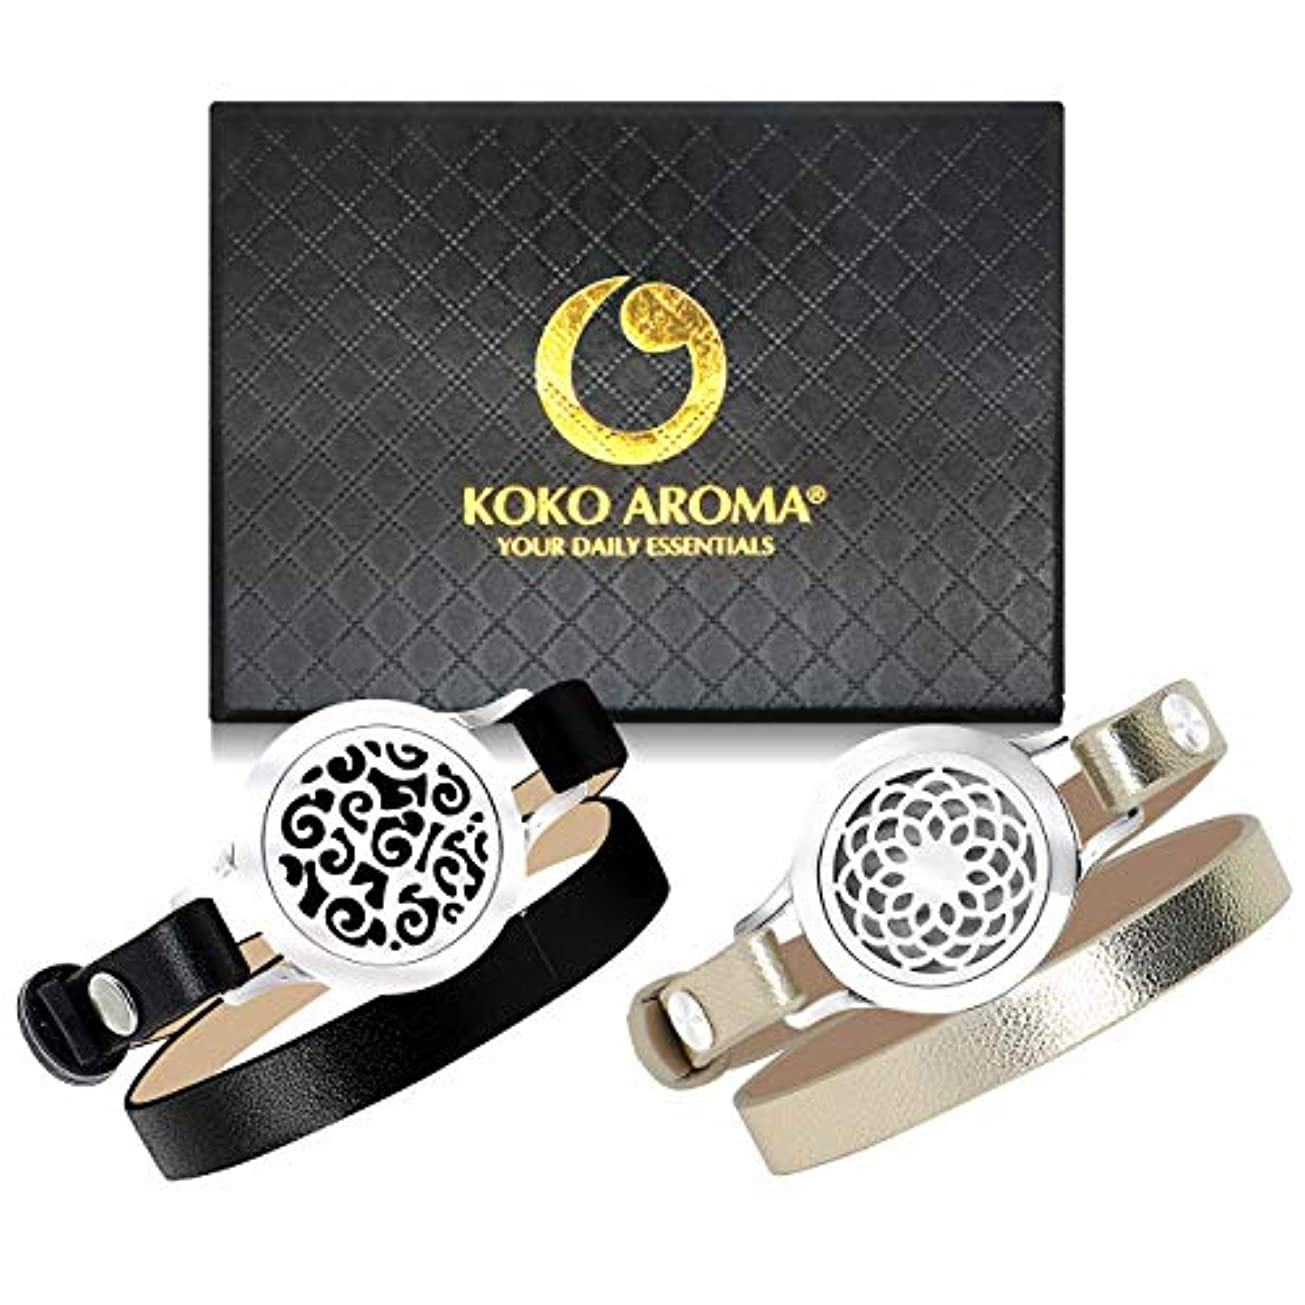 通知する長椅子百科事典KOKO AROMA Essential Oil Diffuser Bracelets 2pcs: Stainless Steel Aromatherapy Bangle or Leather Jewelry Woman...